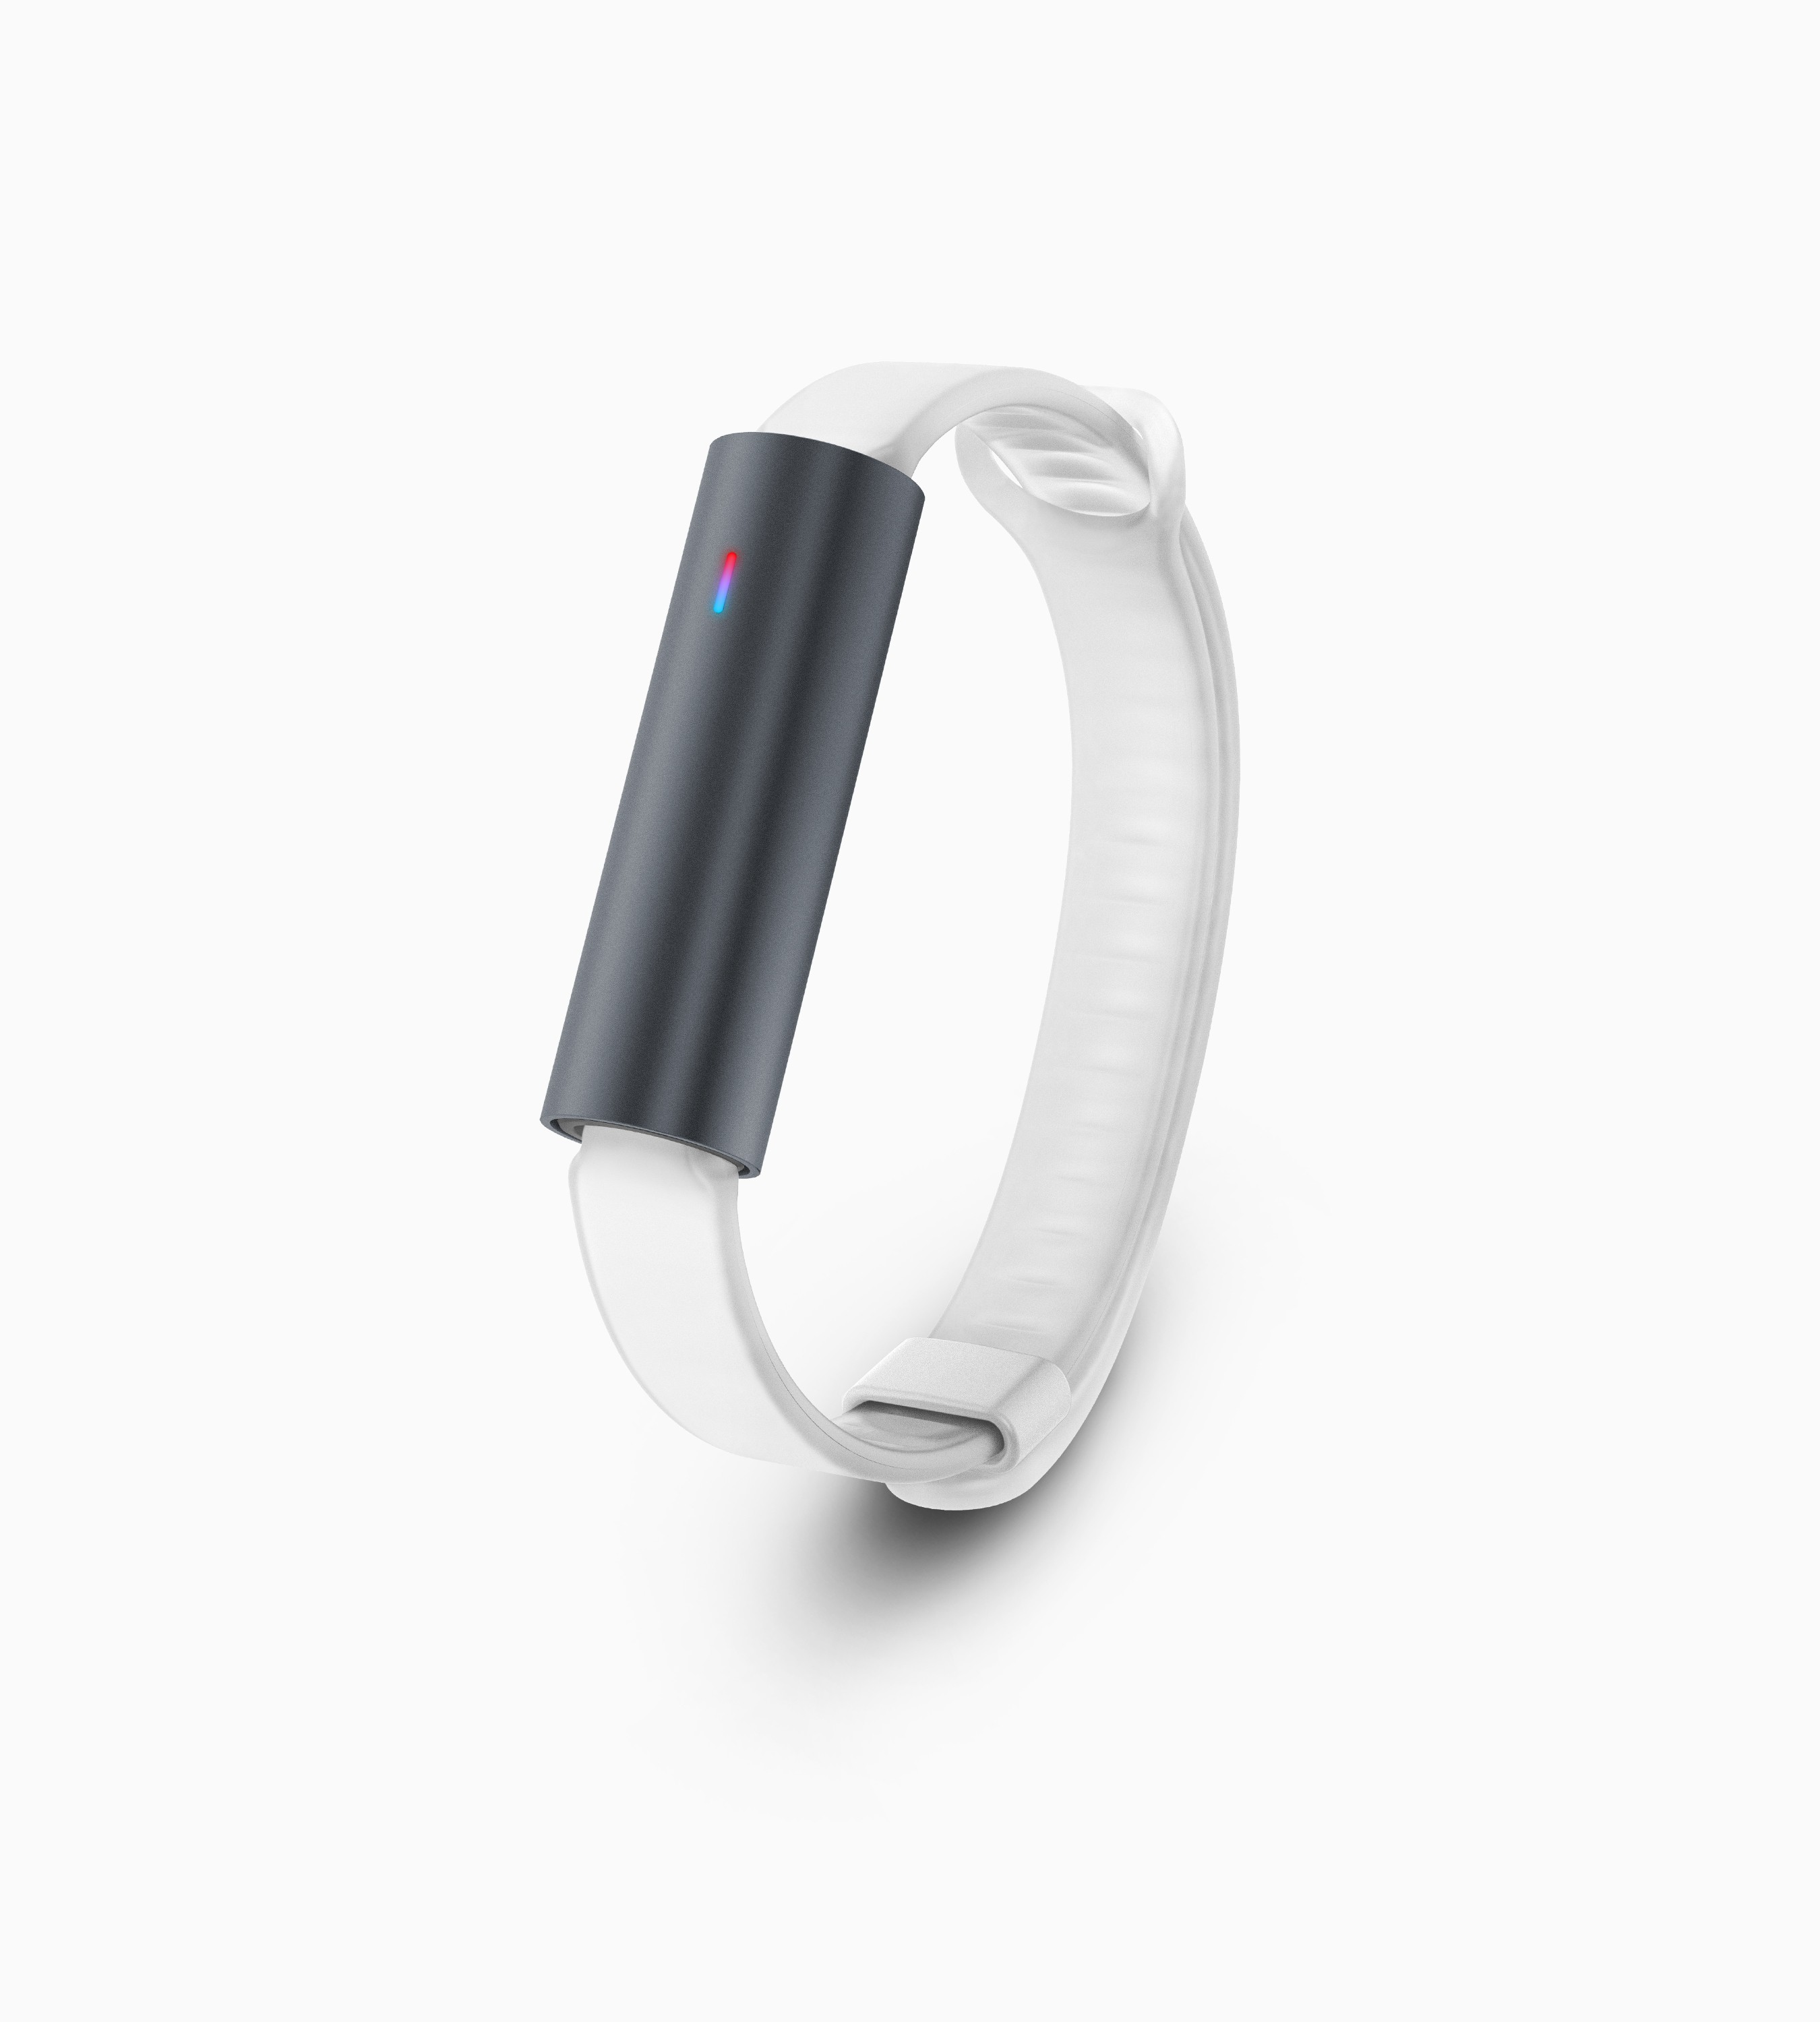 Misfit Ray Fitness & Sleep Tracker + White Sport Band (Galaxy)